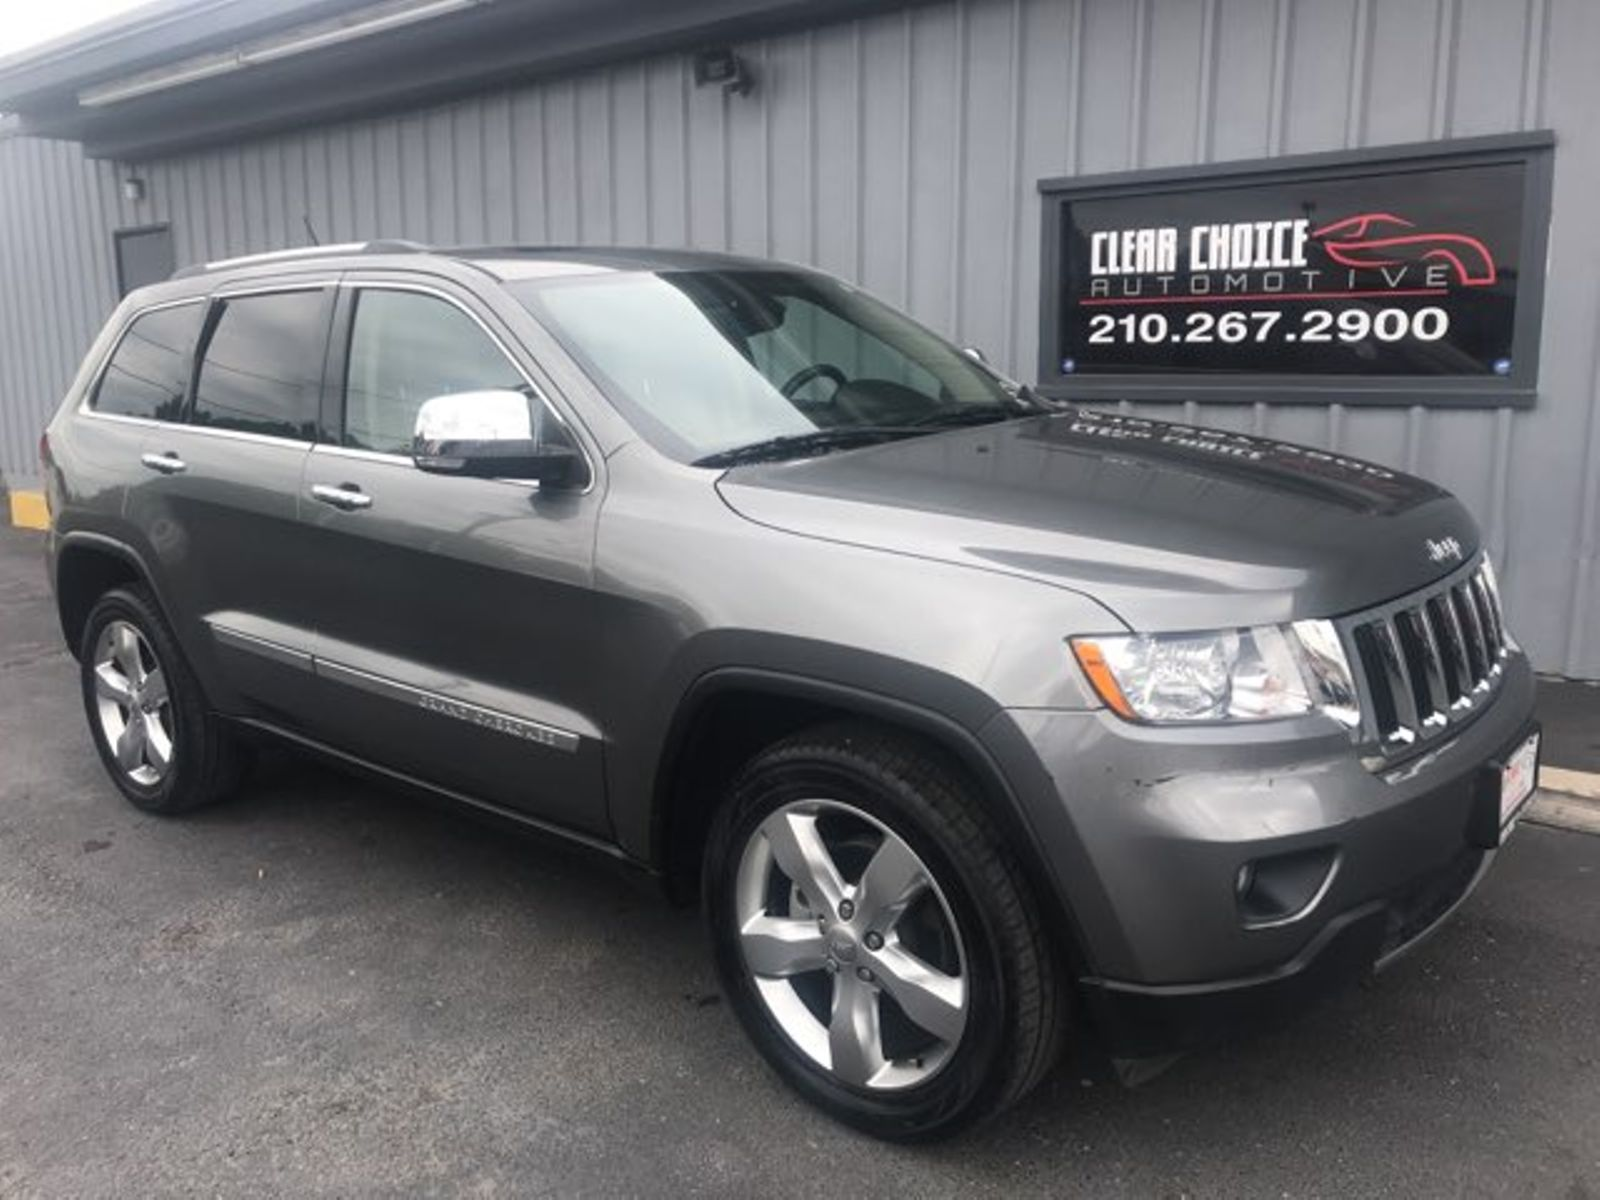 2012 Jeep Grand Cherokee Limited city TX Clear Choice Automotive